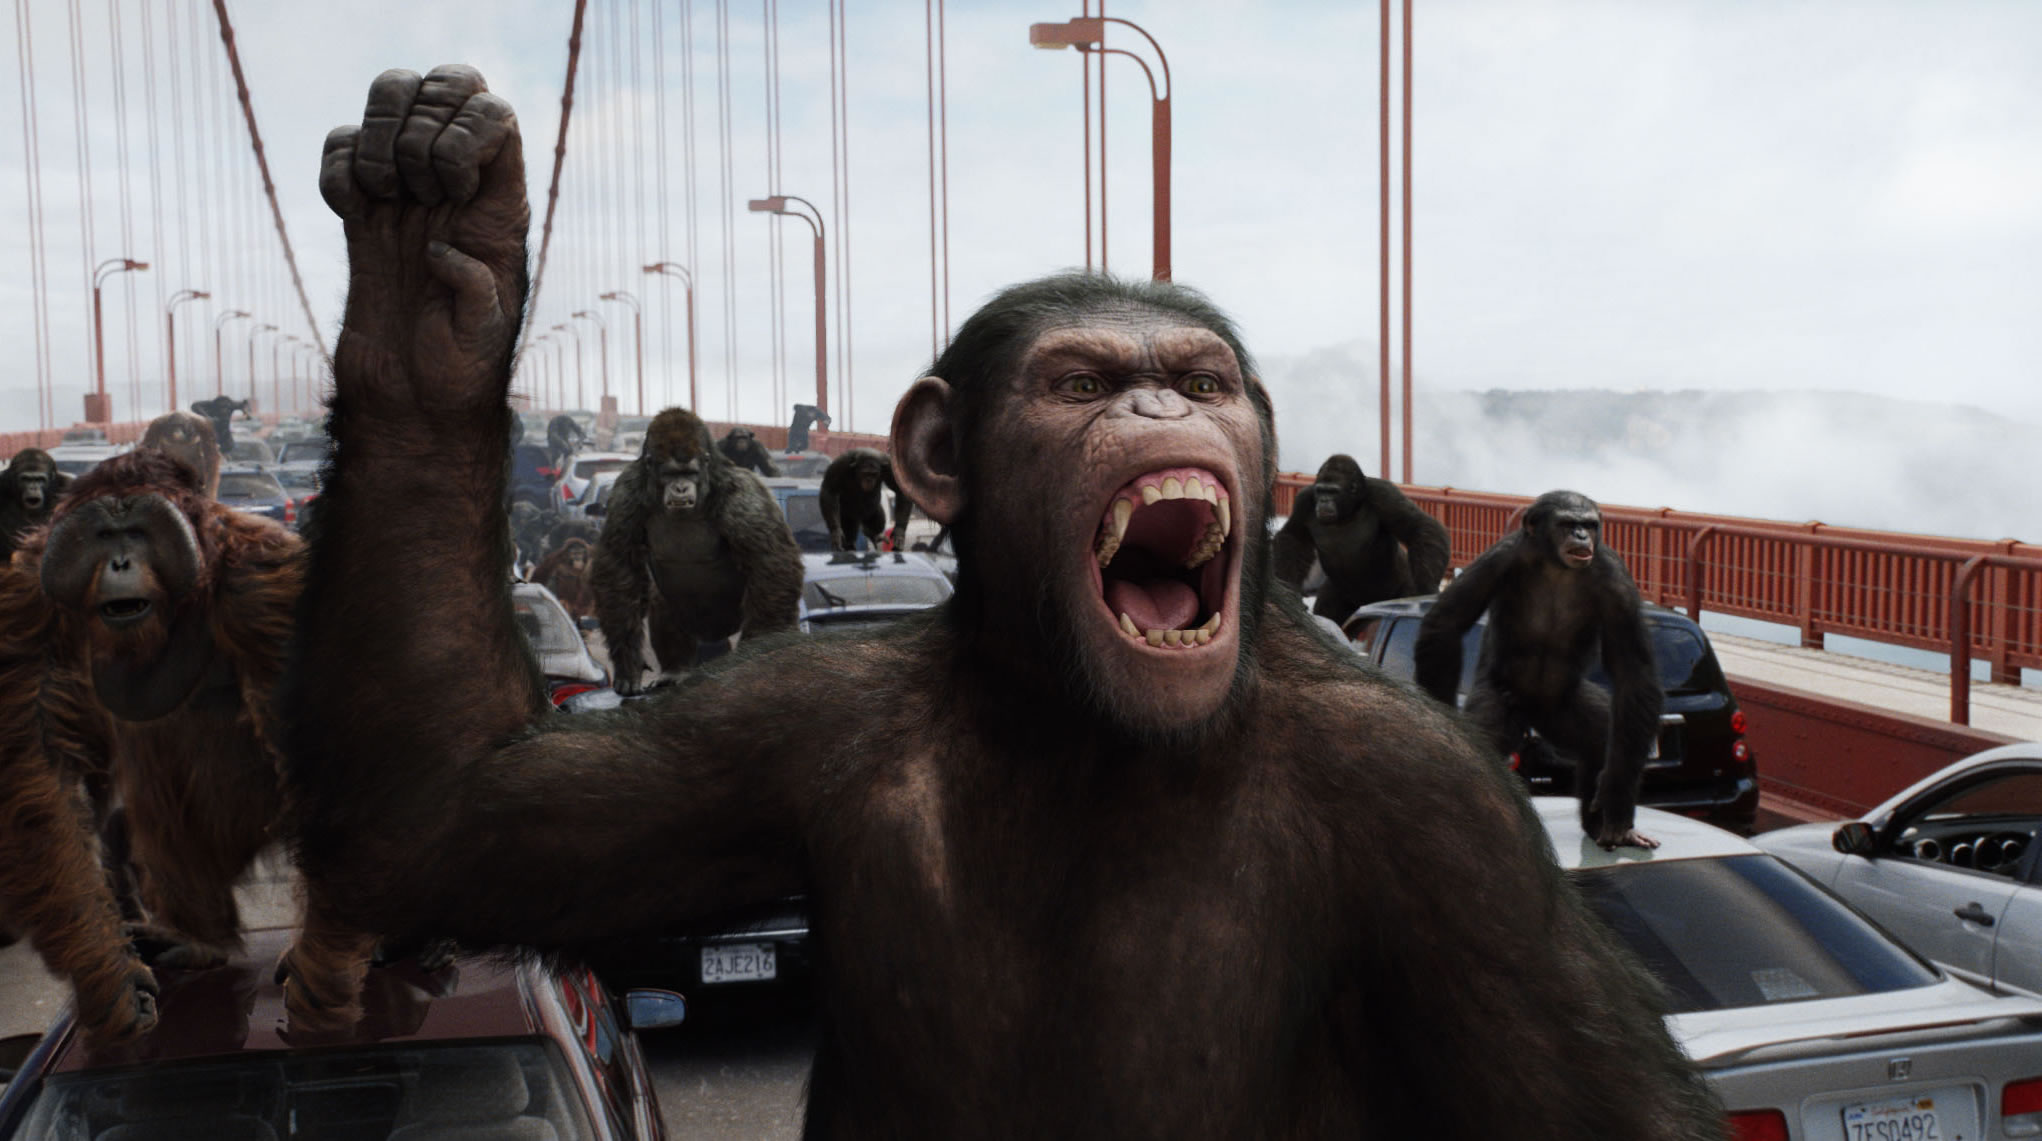 rise-of-the-planet-of-the-apes-movie-image-031.jpg